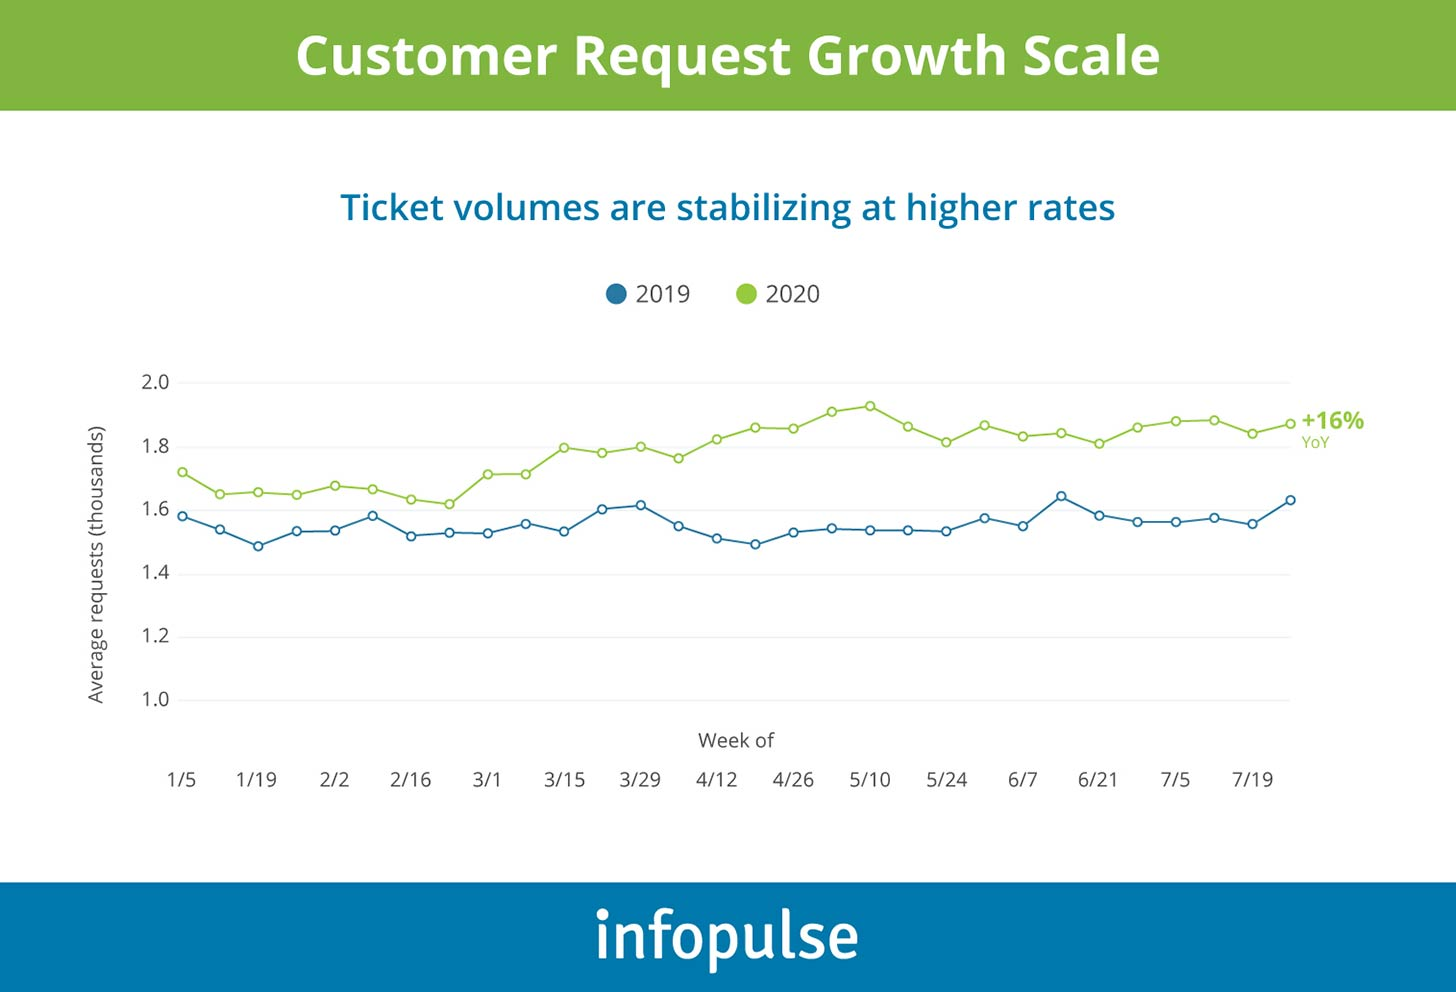 Customer Request Growth Scale - Infopulse - 1